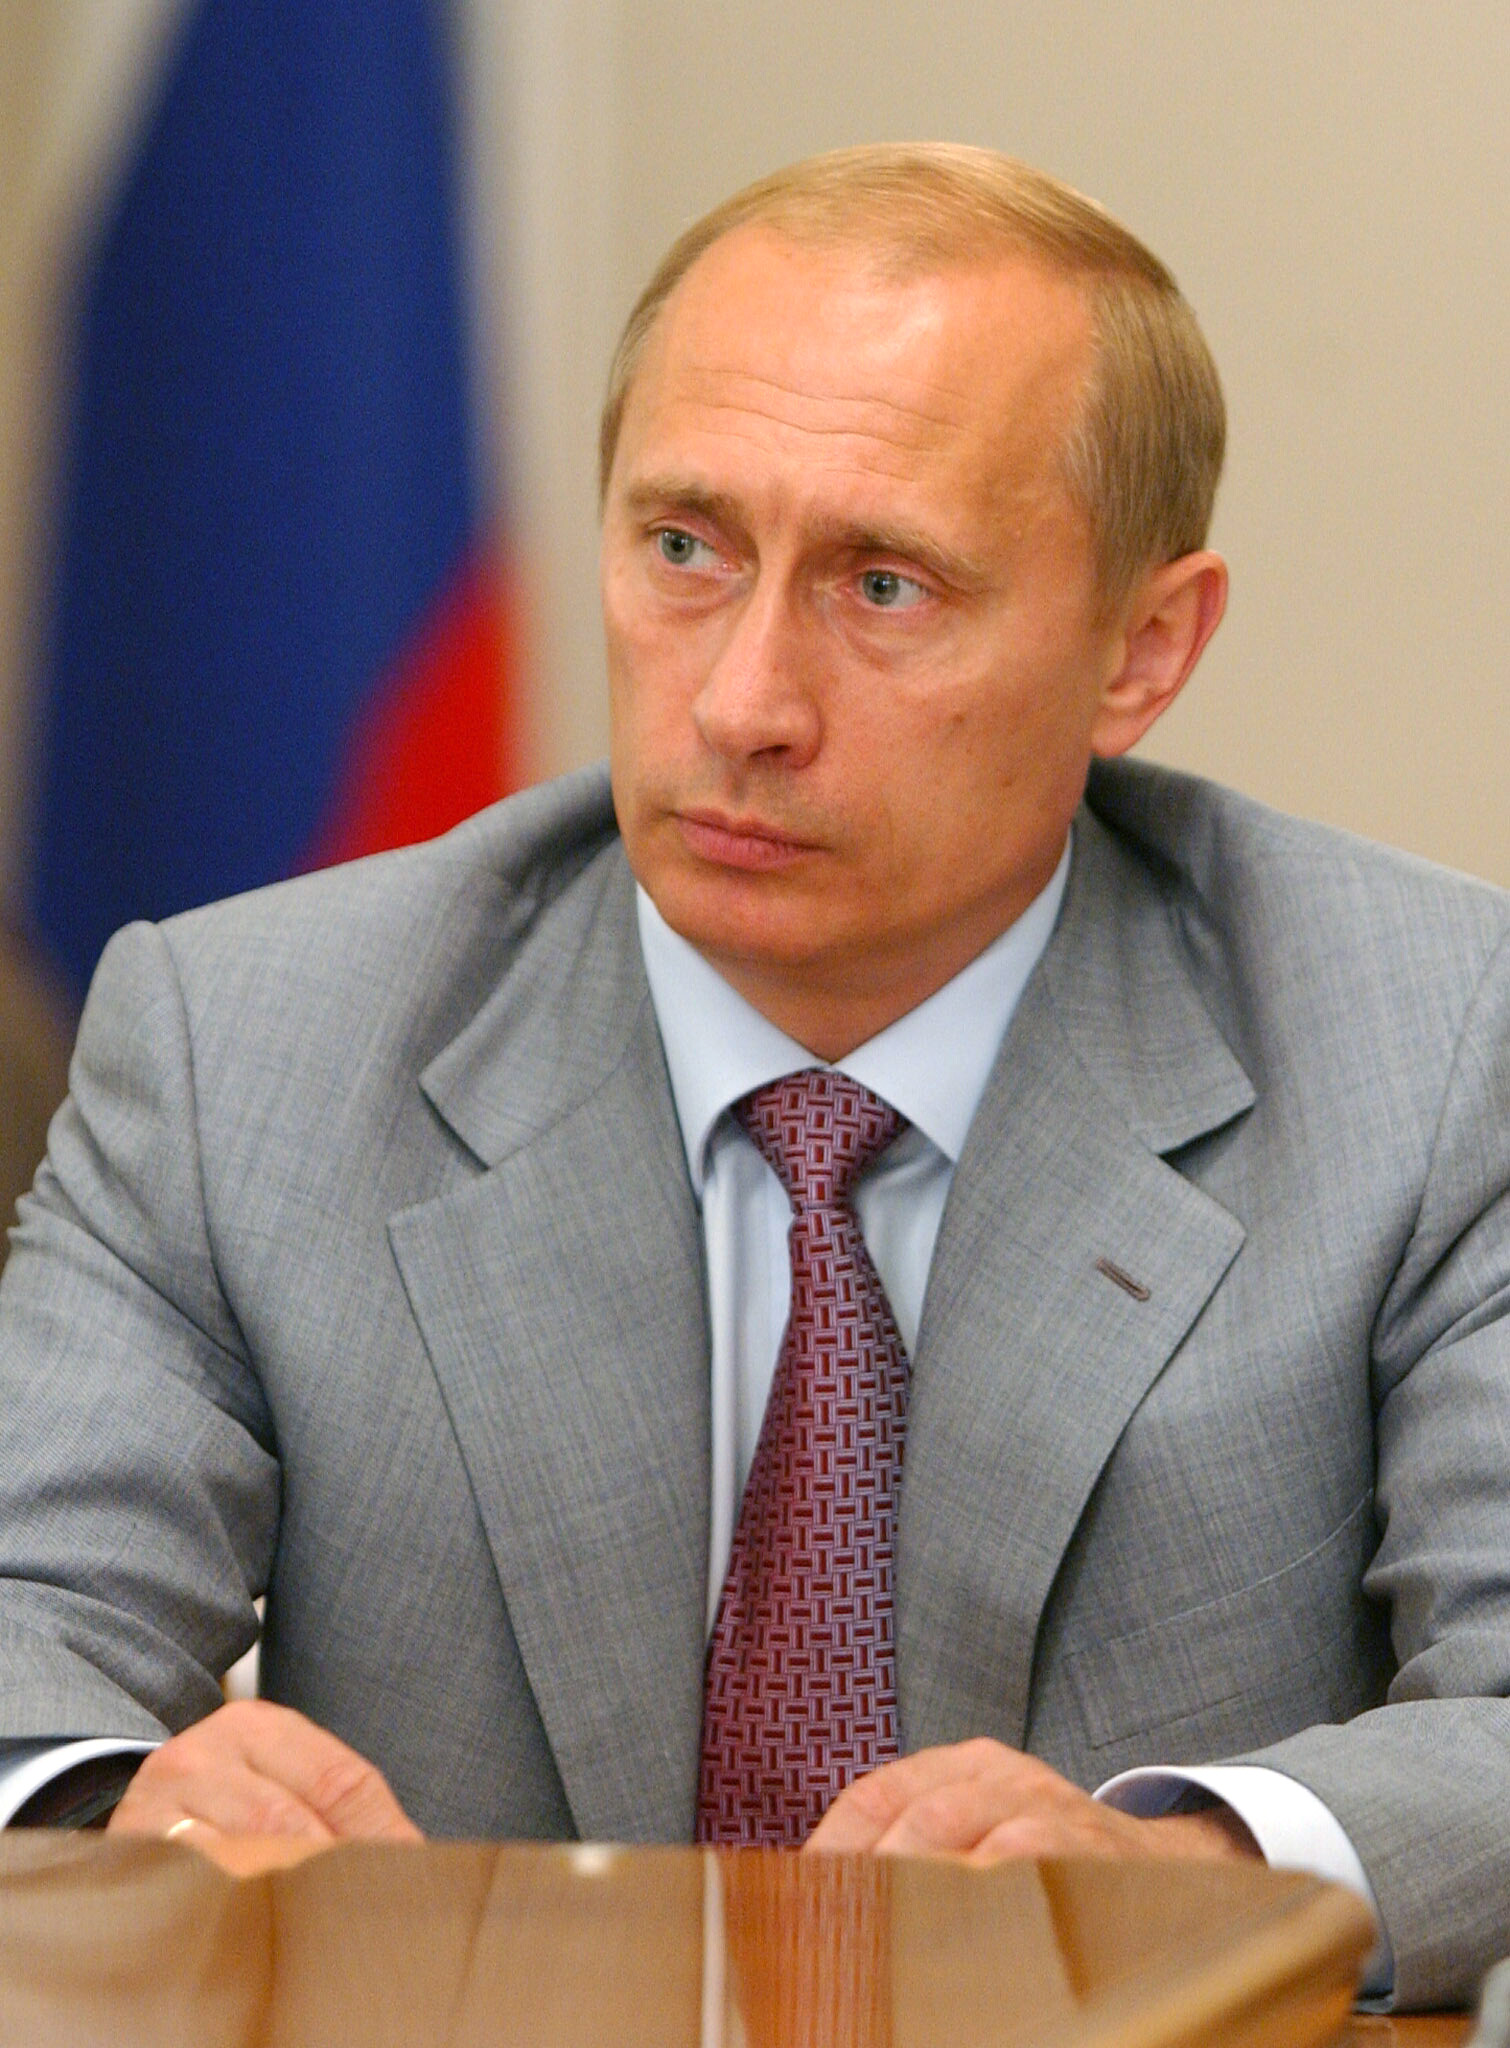 https://i0.wp.com/upload.wikimedia.org/wikipedia/commons/0/02/Vladimir_Putin-2.jpg